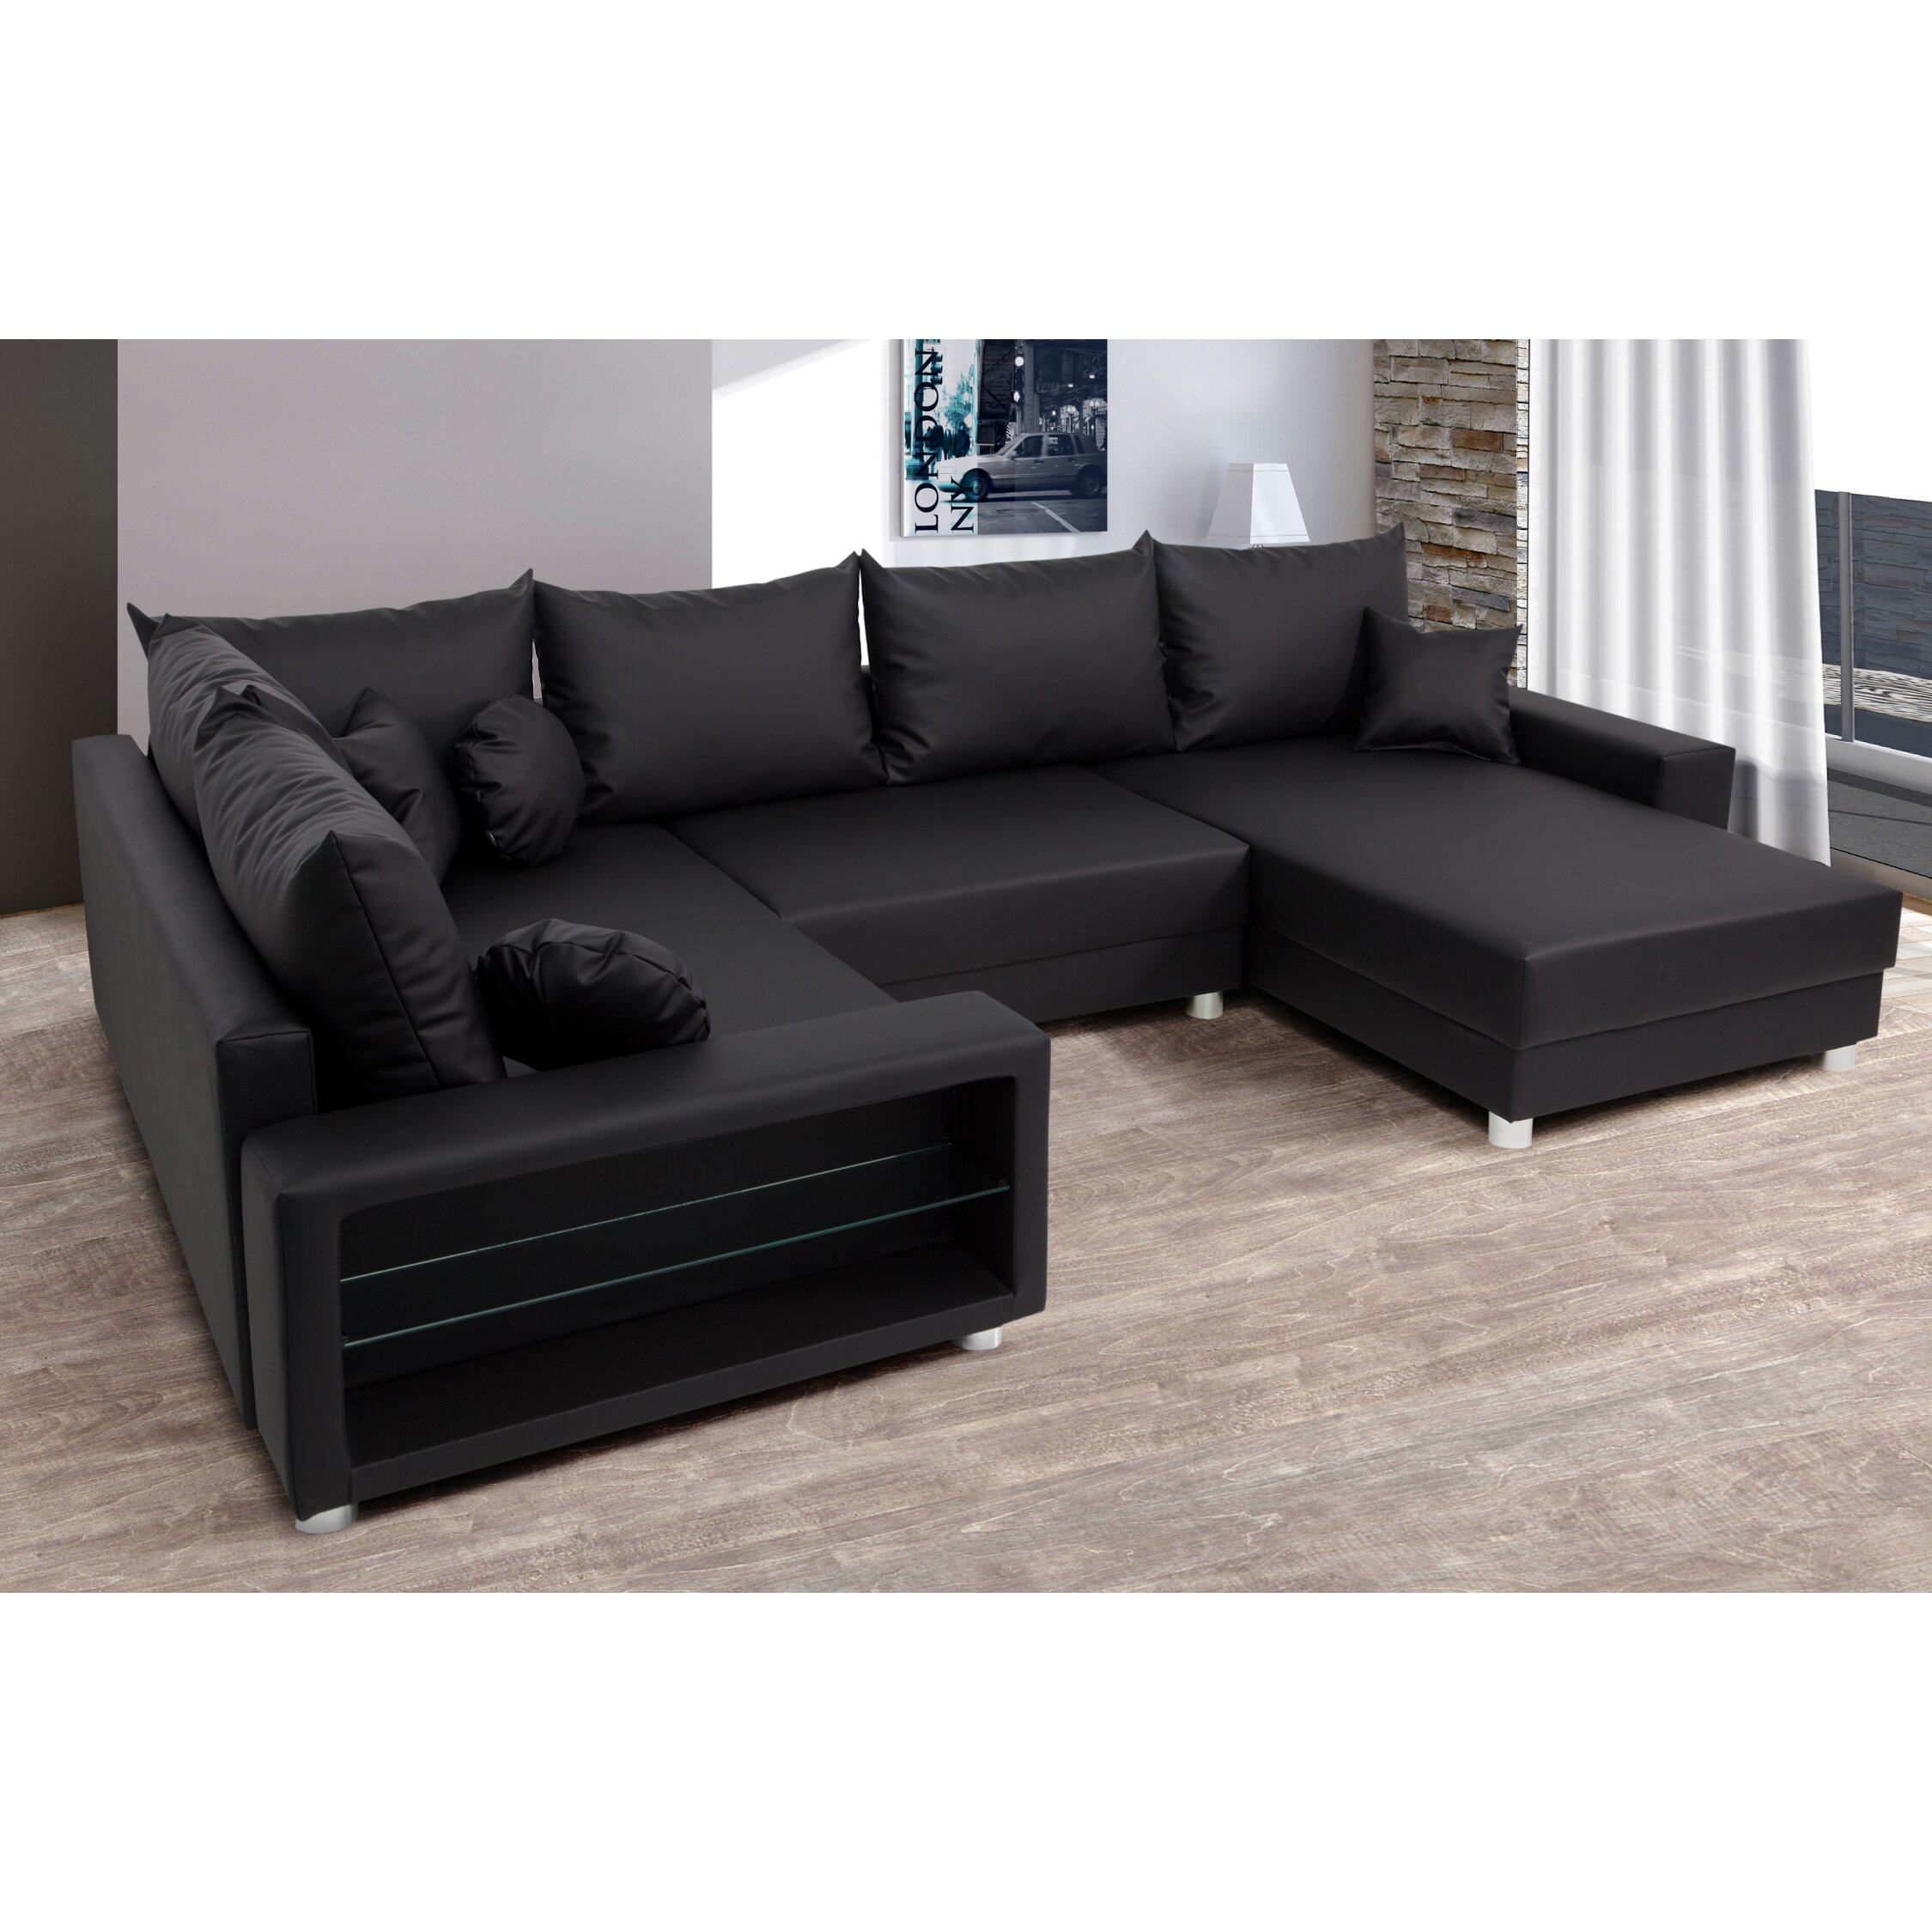 sofa barigan river mit led beleuchtung von home haus. Black Bedroom Furniture Sets. Home Design Ideas